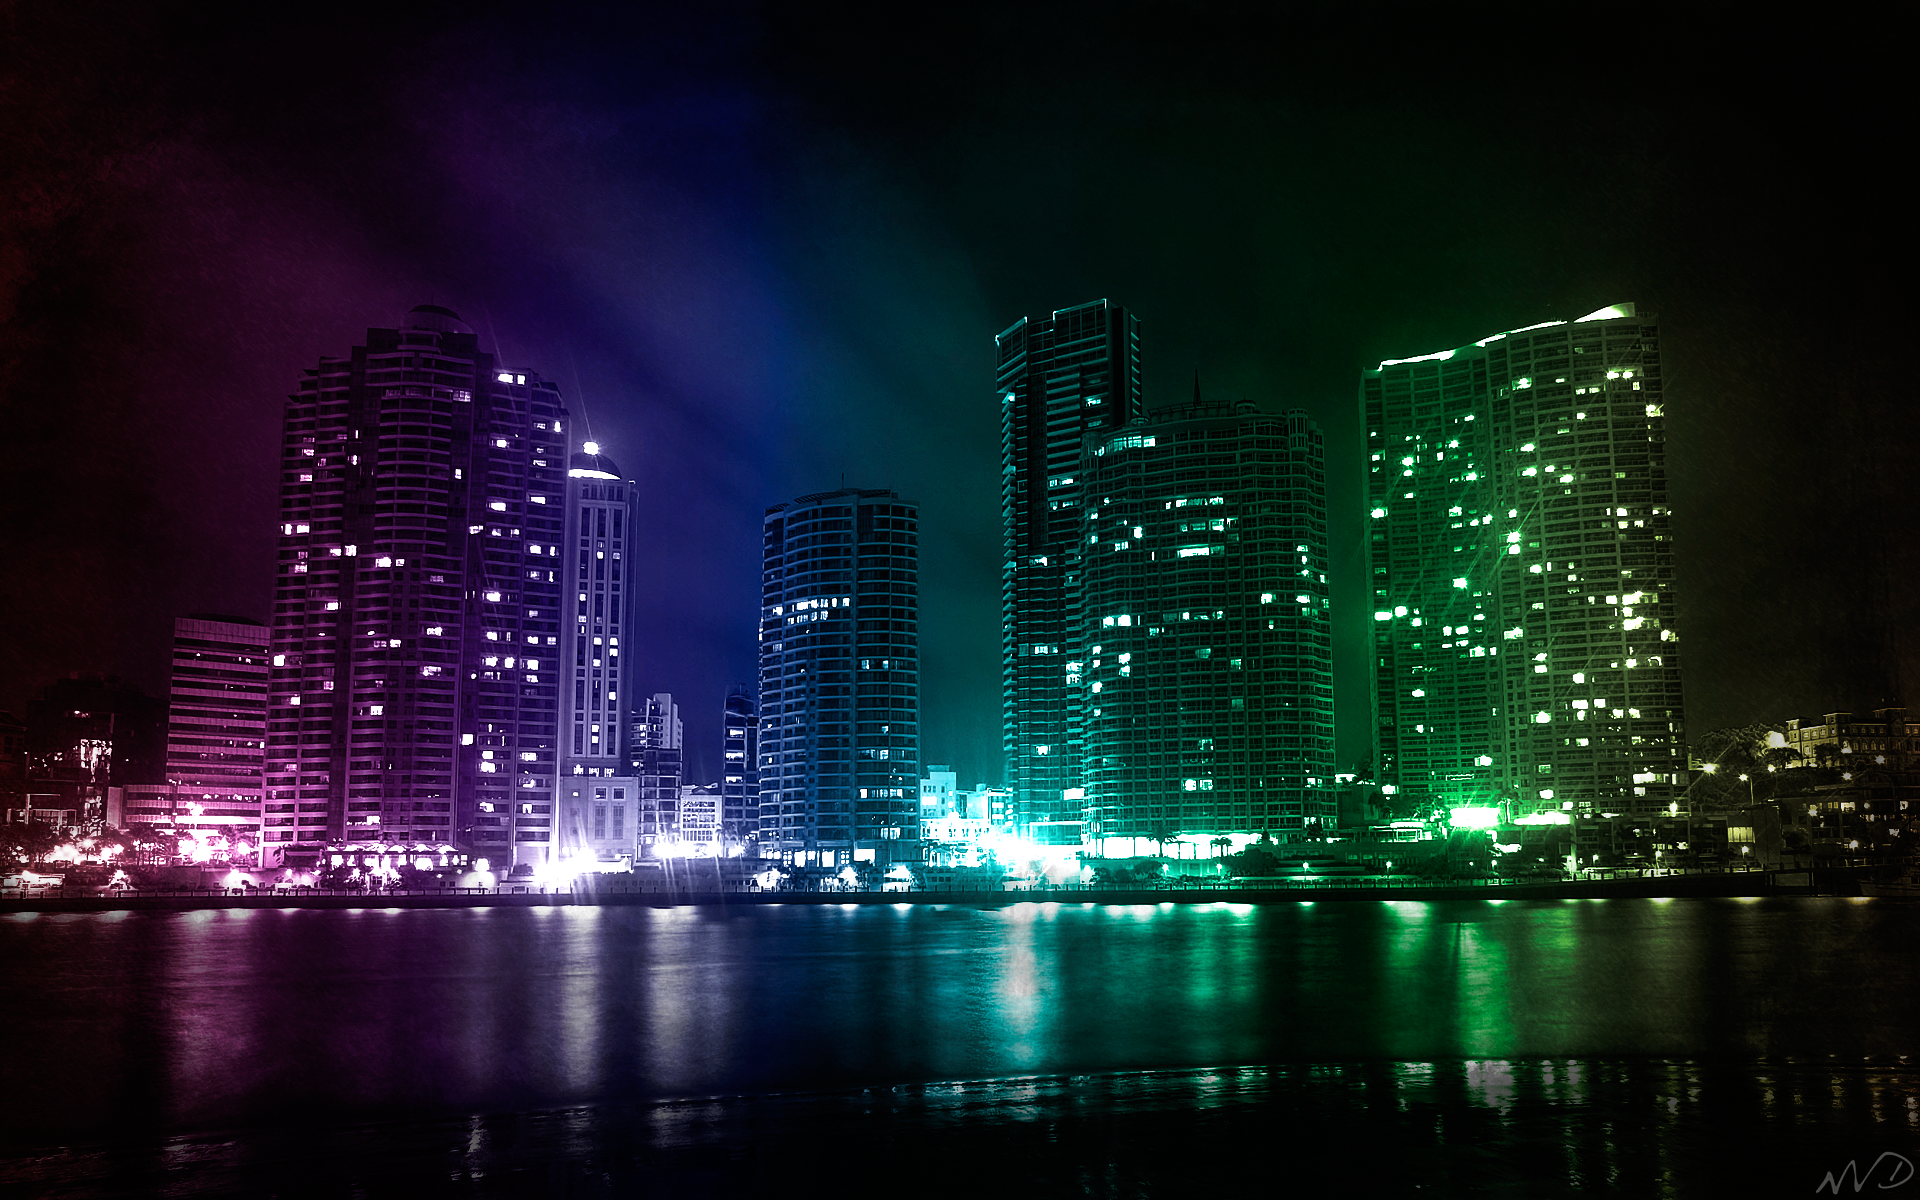 free city hd wallpaper images for desktop download